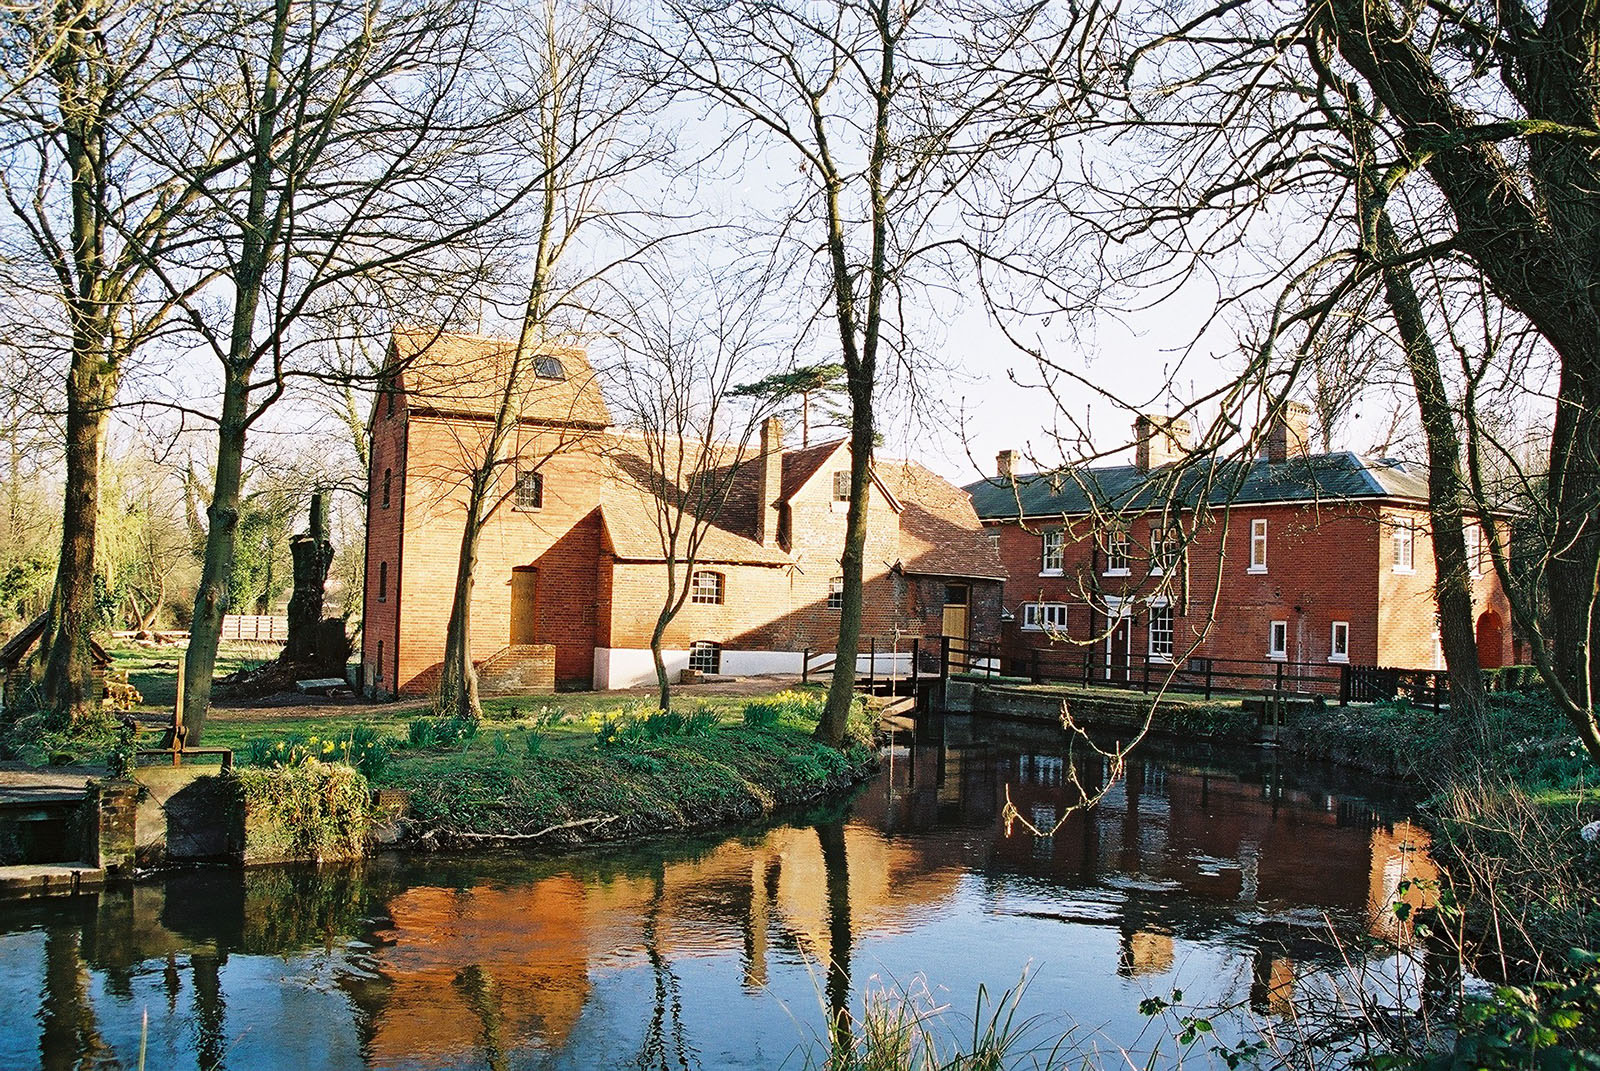 Rooksbury Mill & Mill House in Andover.